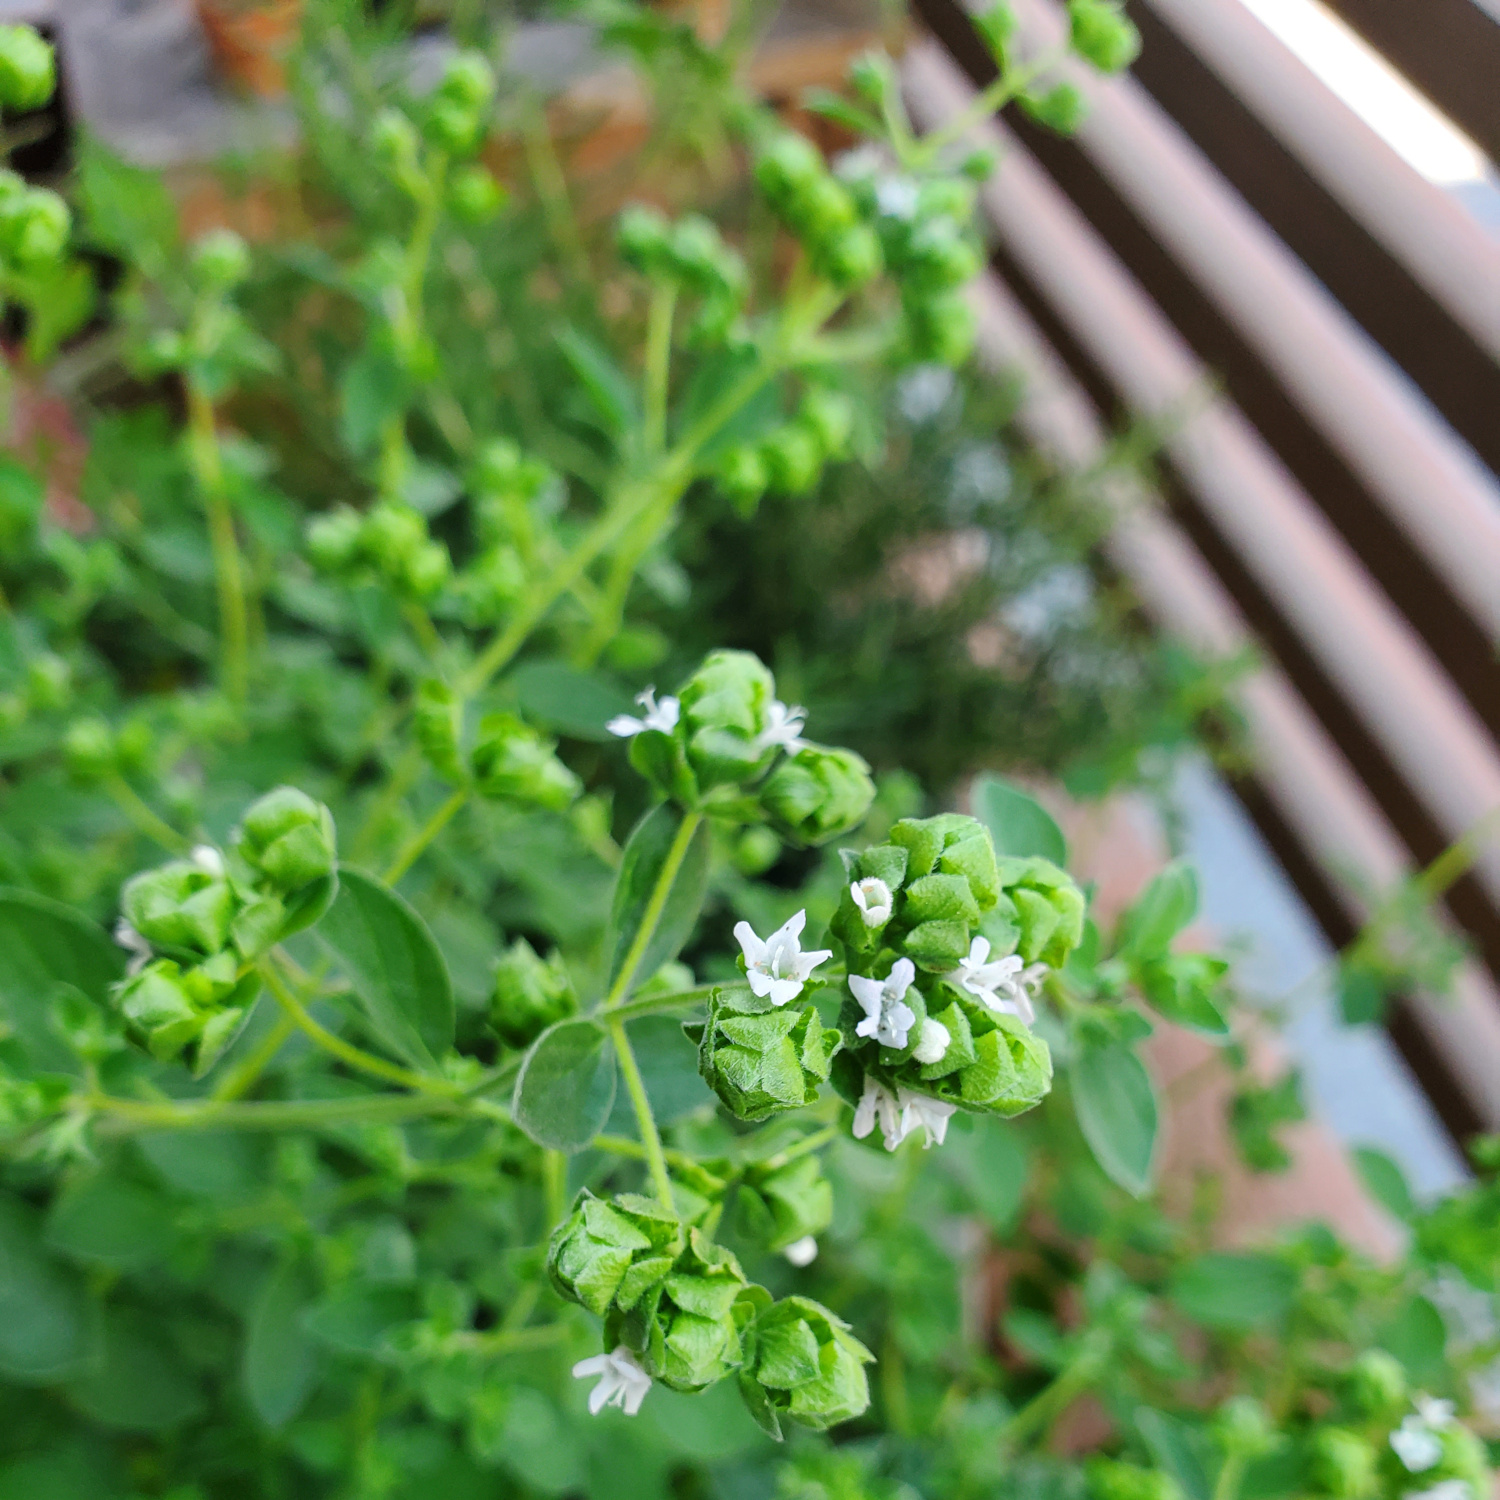 Thyme that won't stop flowering, no matter how much I prune it